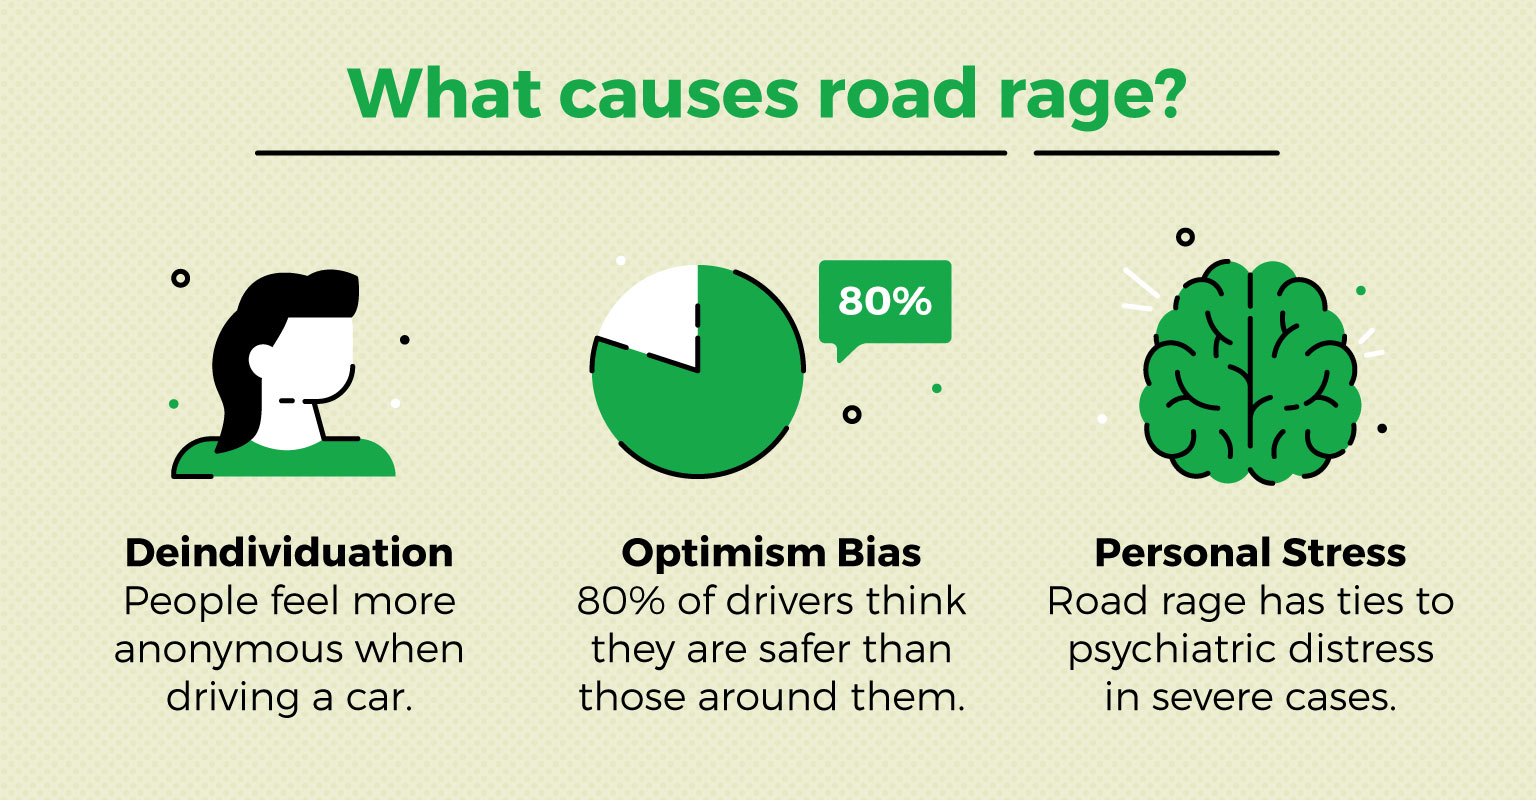 the leading causes of road rage